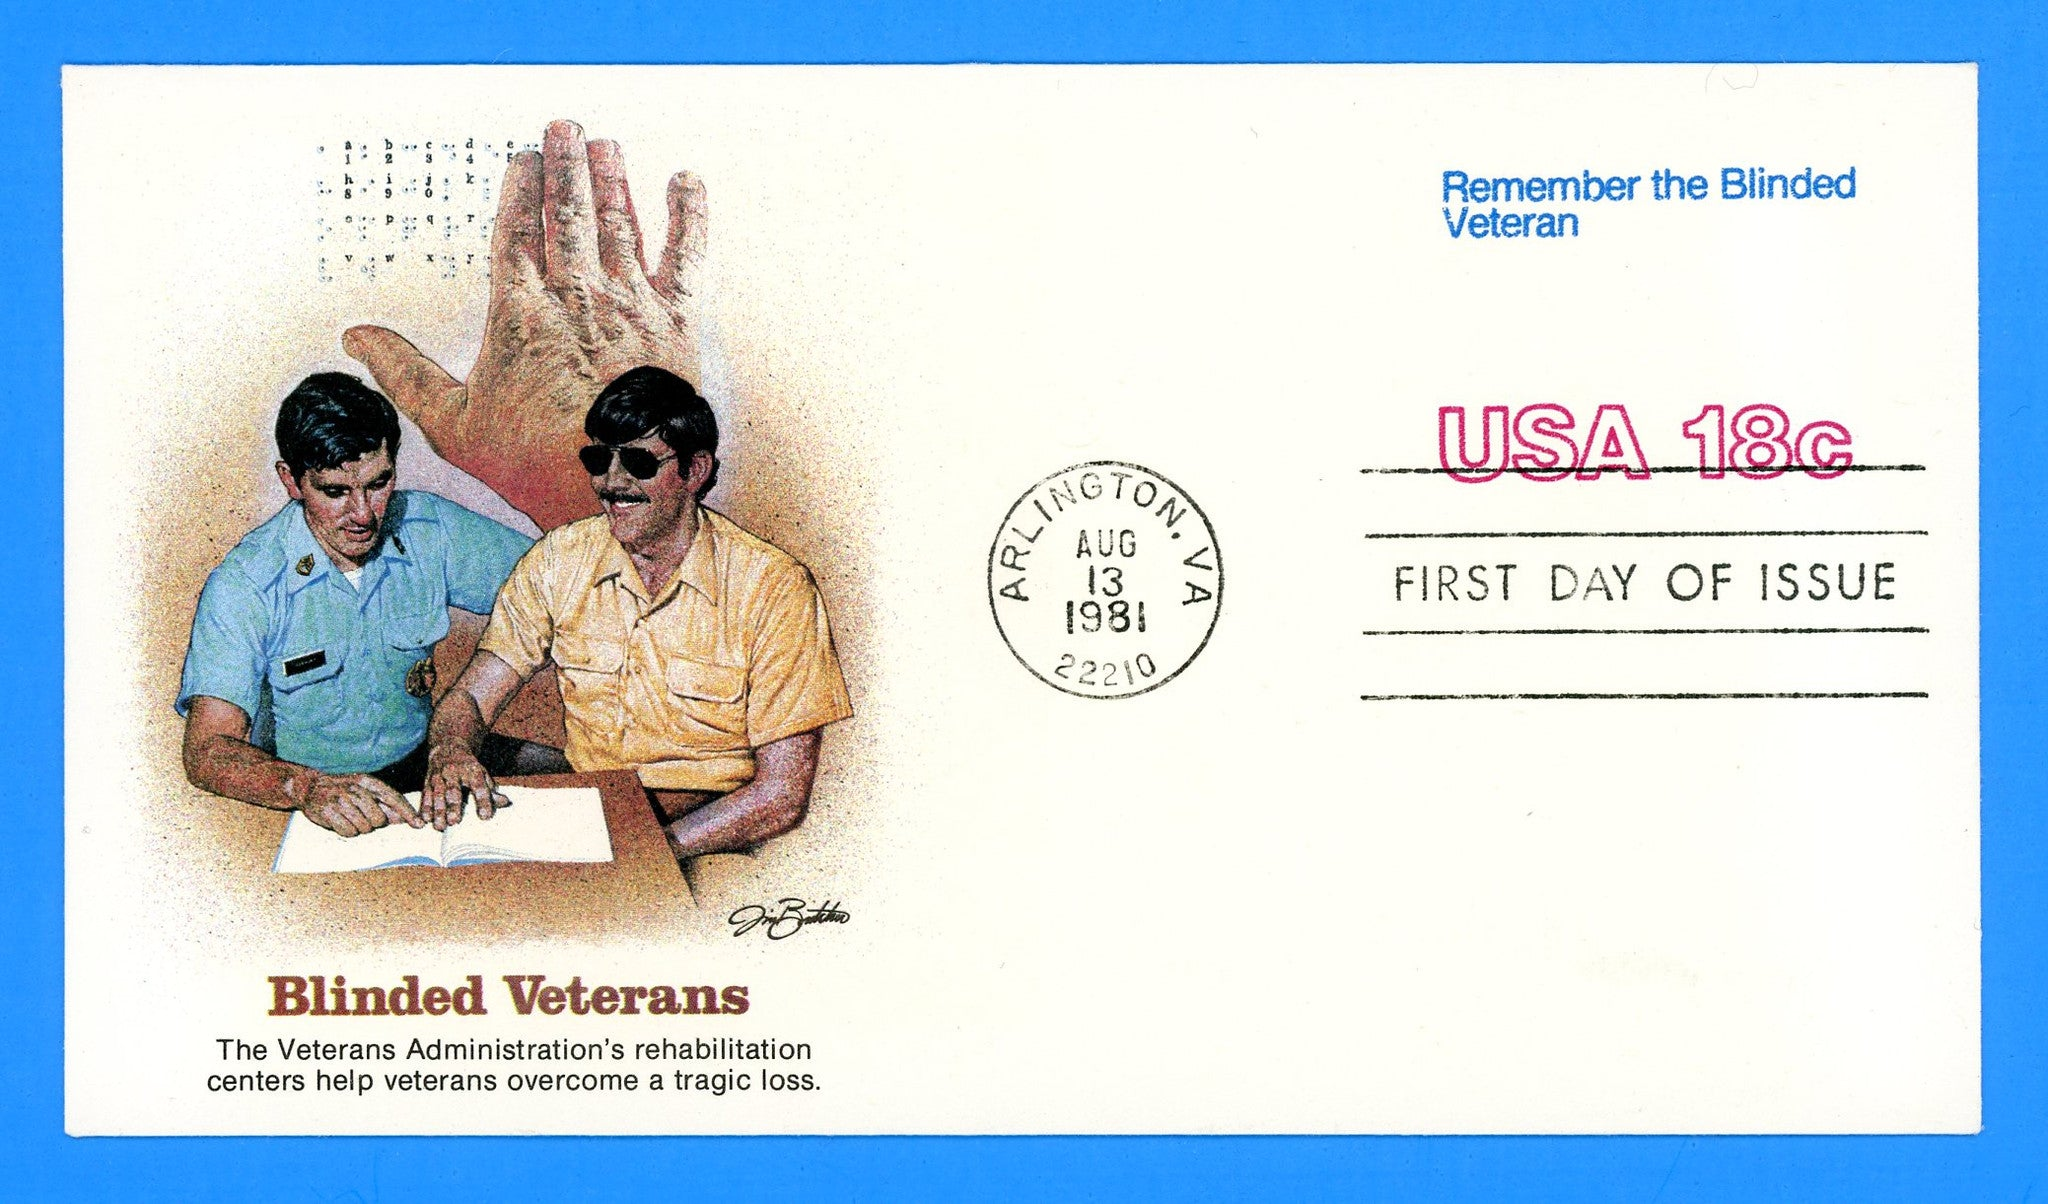 Remember the Blinded Veteran First Day Cover by Fleetwood